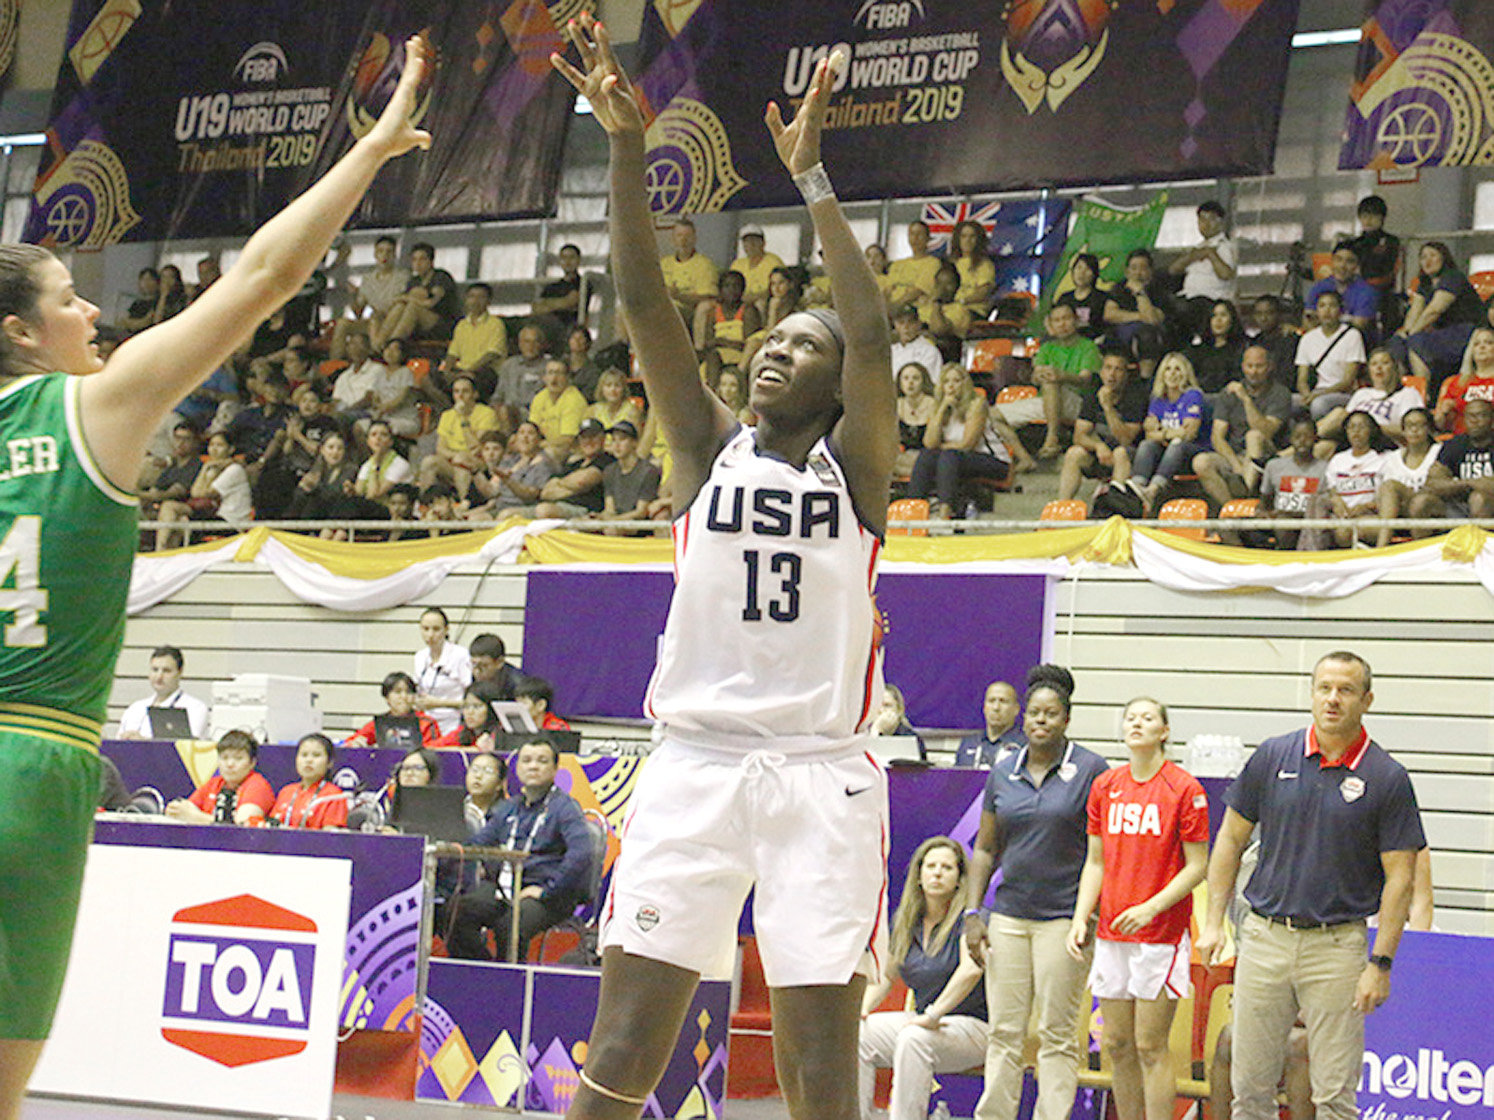 FORMER BRADLEY CENTRAL standout Rhyne Howard (13) fires up a shot during the opening round of the FIBA U19 World Cup in Bangkok. Thailand, Saturday morning. The University of Kentucky star scored 10 points in the USA's victory over Australia.